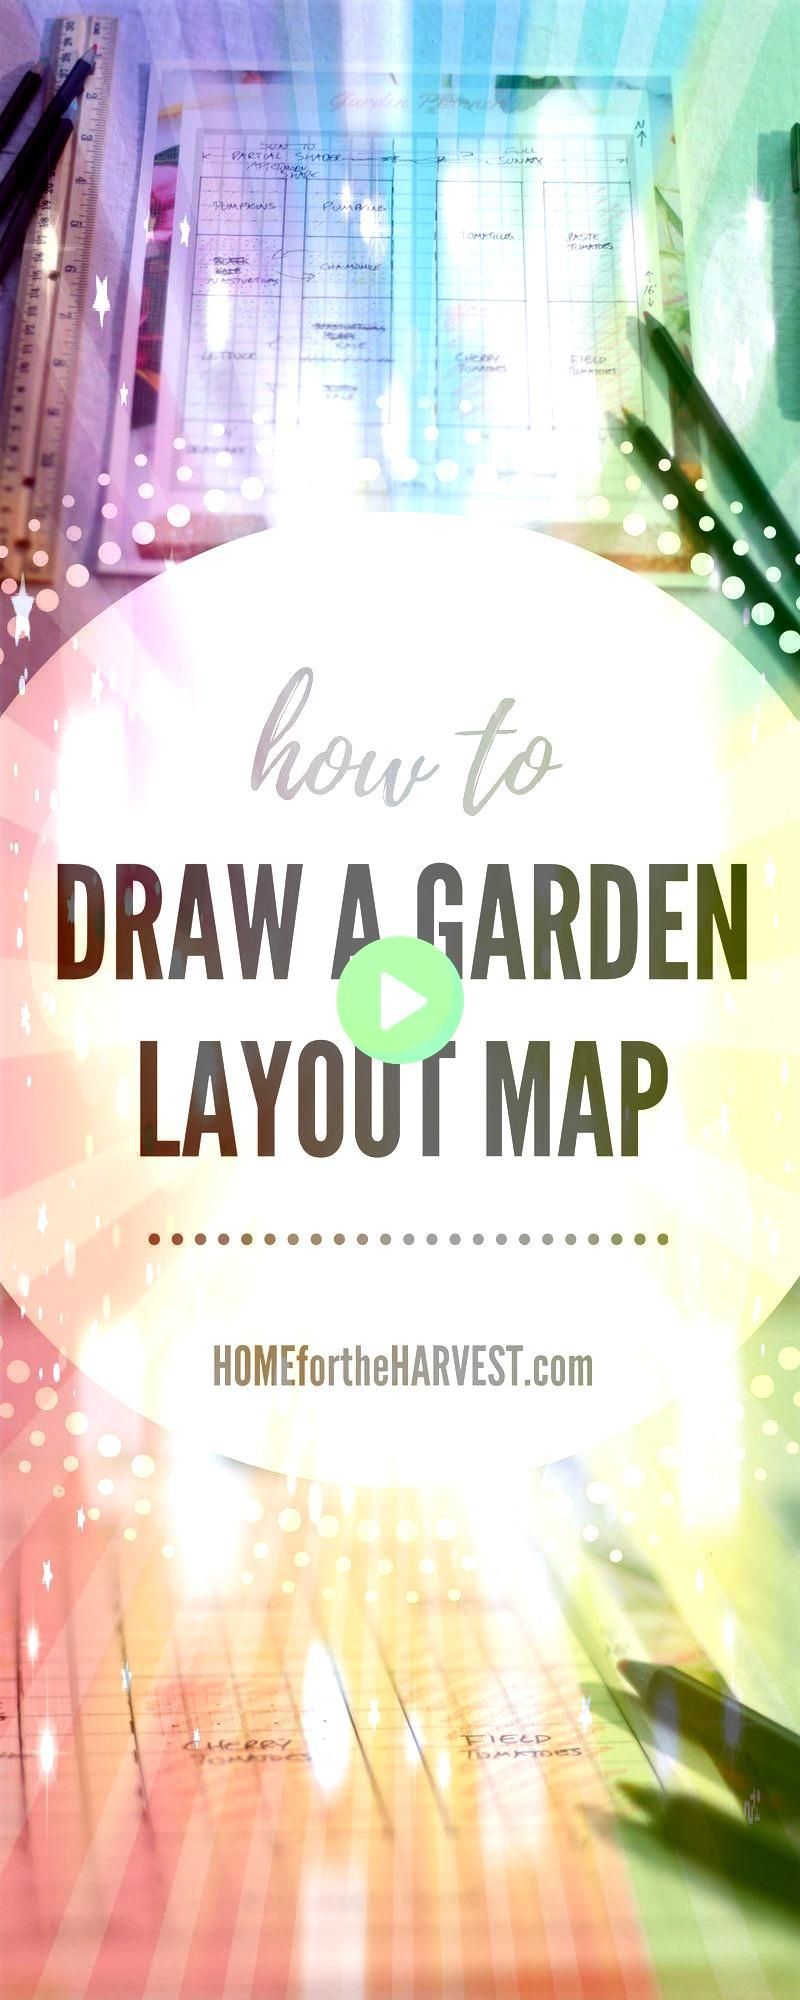 to Draw a Garden Layout Map  Home for the HarvestHow to Draw a Garden Layout Map  Home for the Harvest Free Garden Plan Printable Planner Seed Order Seed Inventory Square...